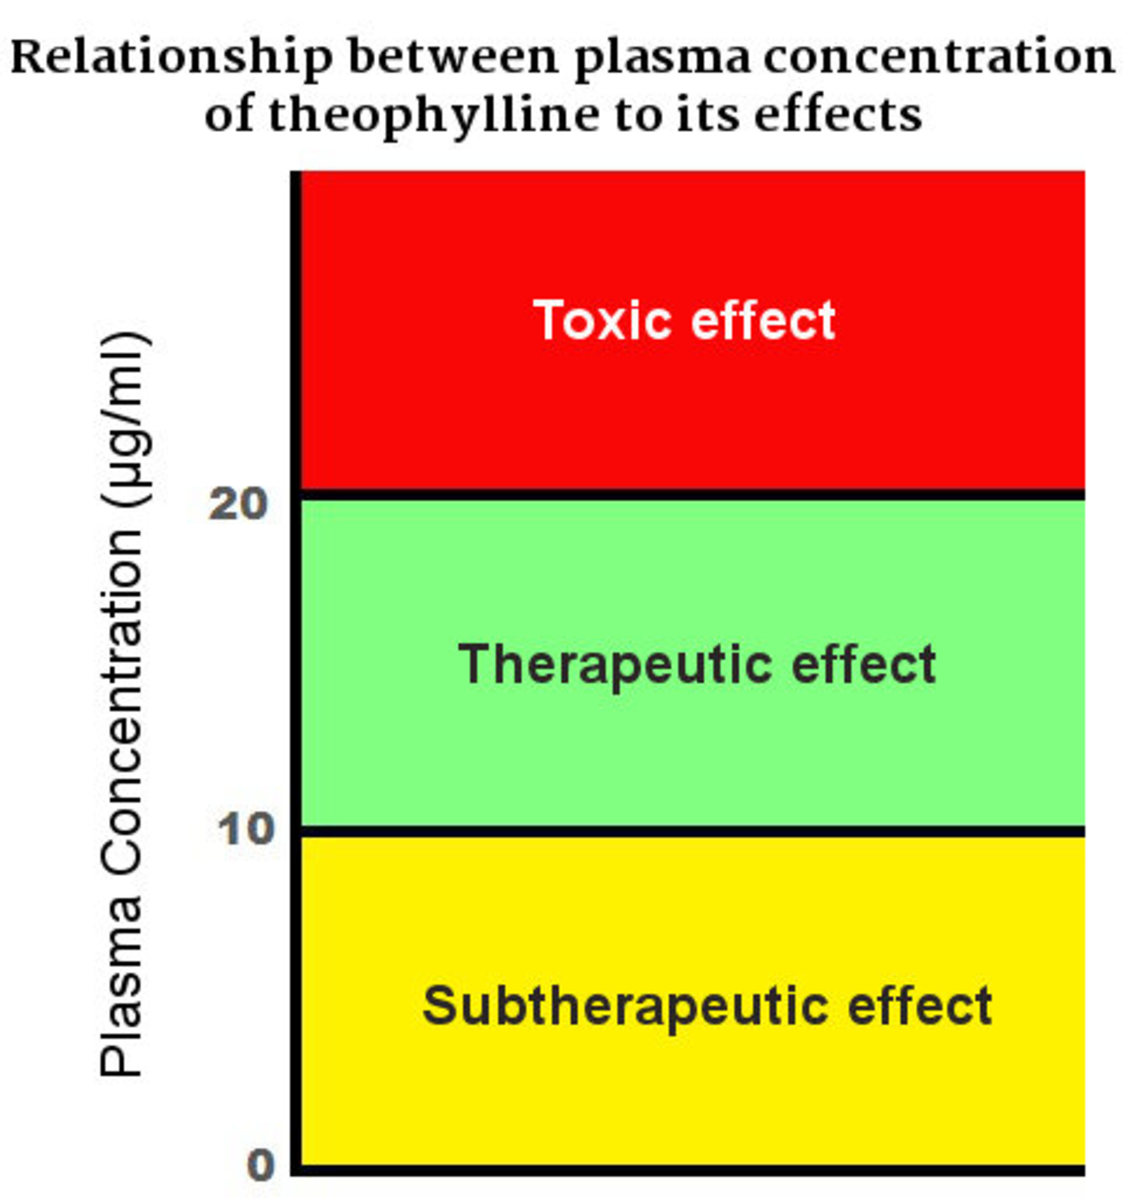 Relationship of plasma concentration of theophylline to its effects